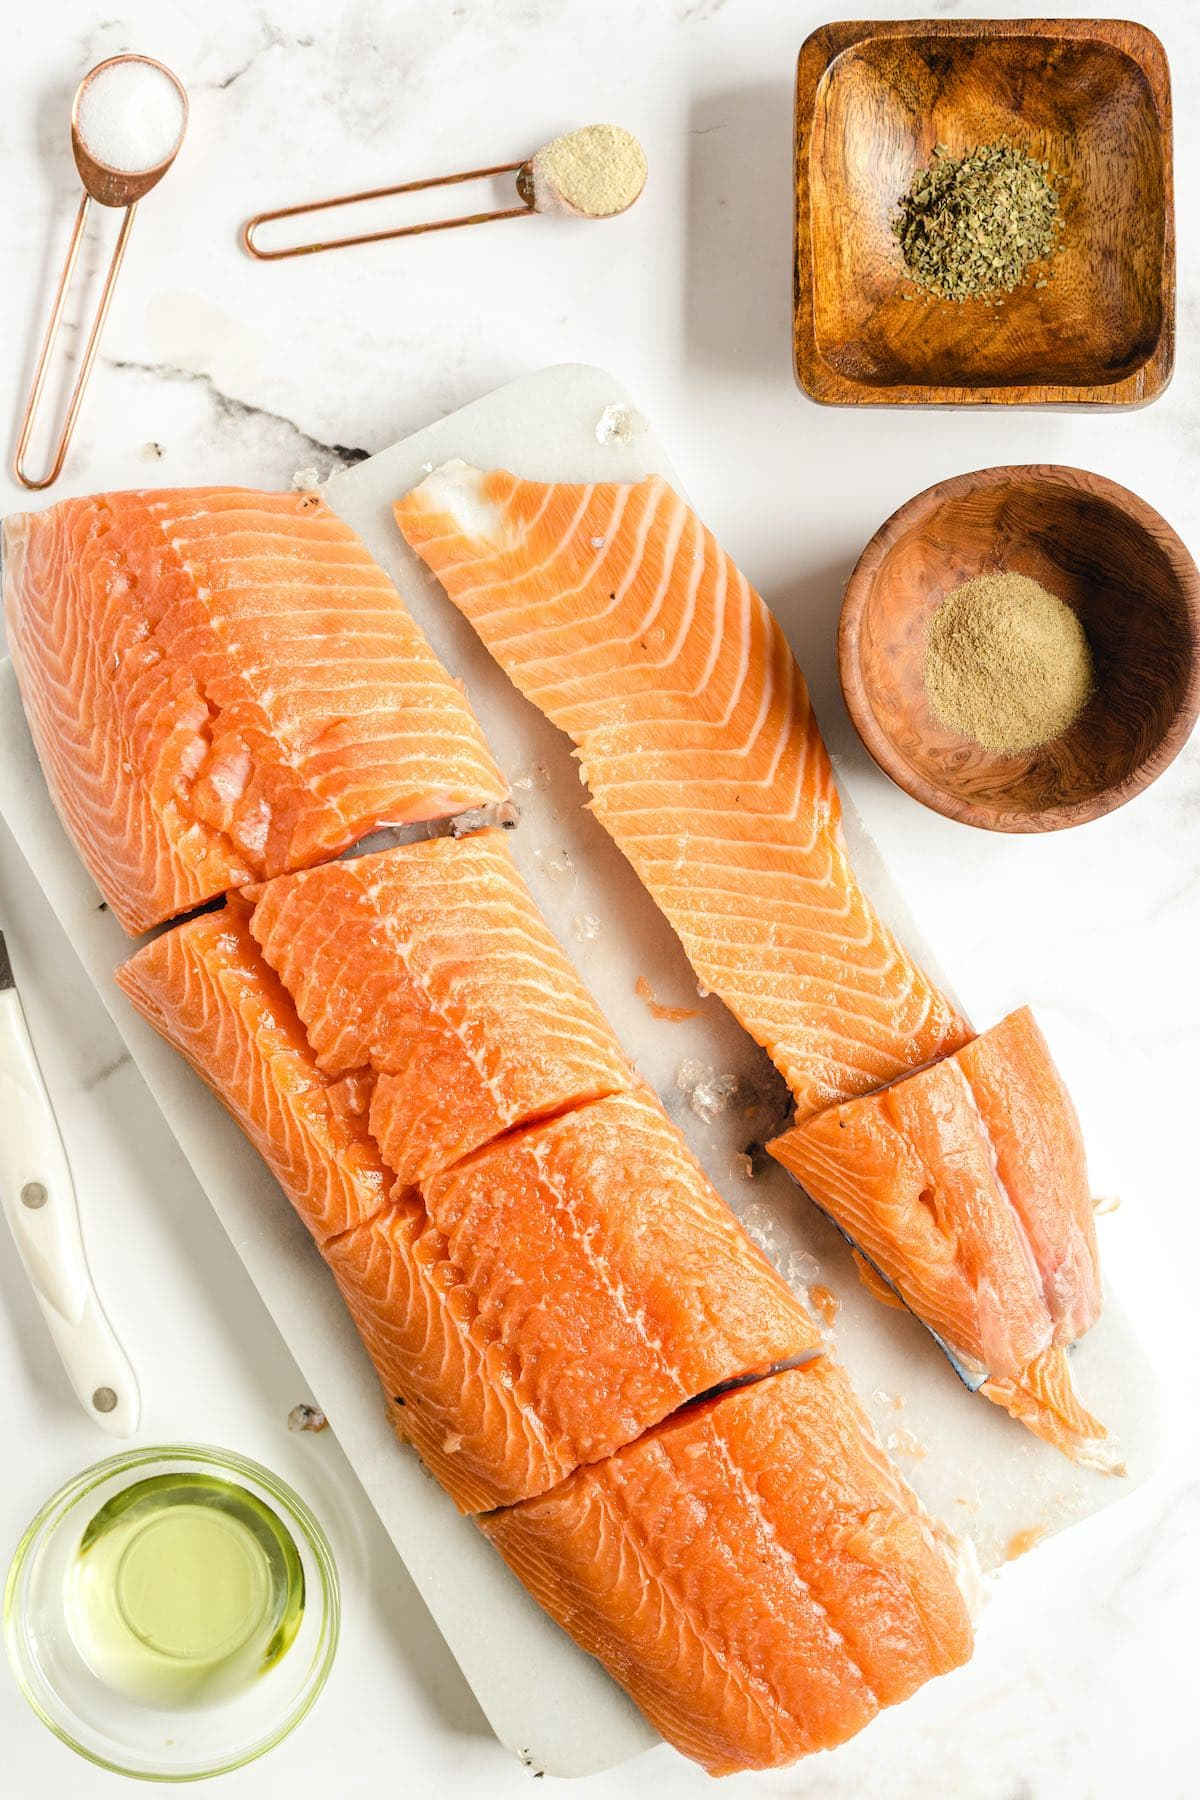 Cut the thick portion of salmon into 4 servings